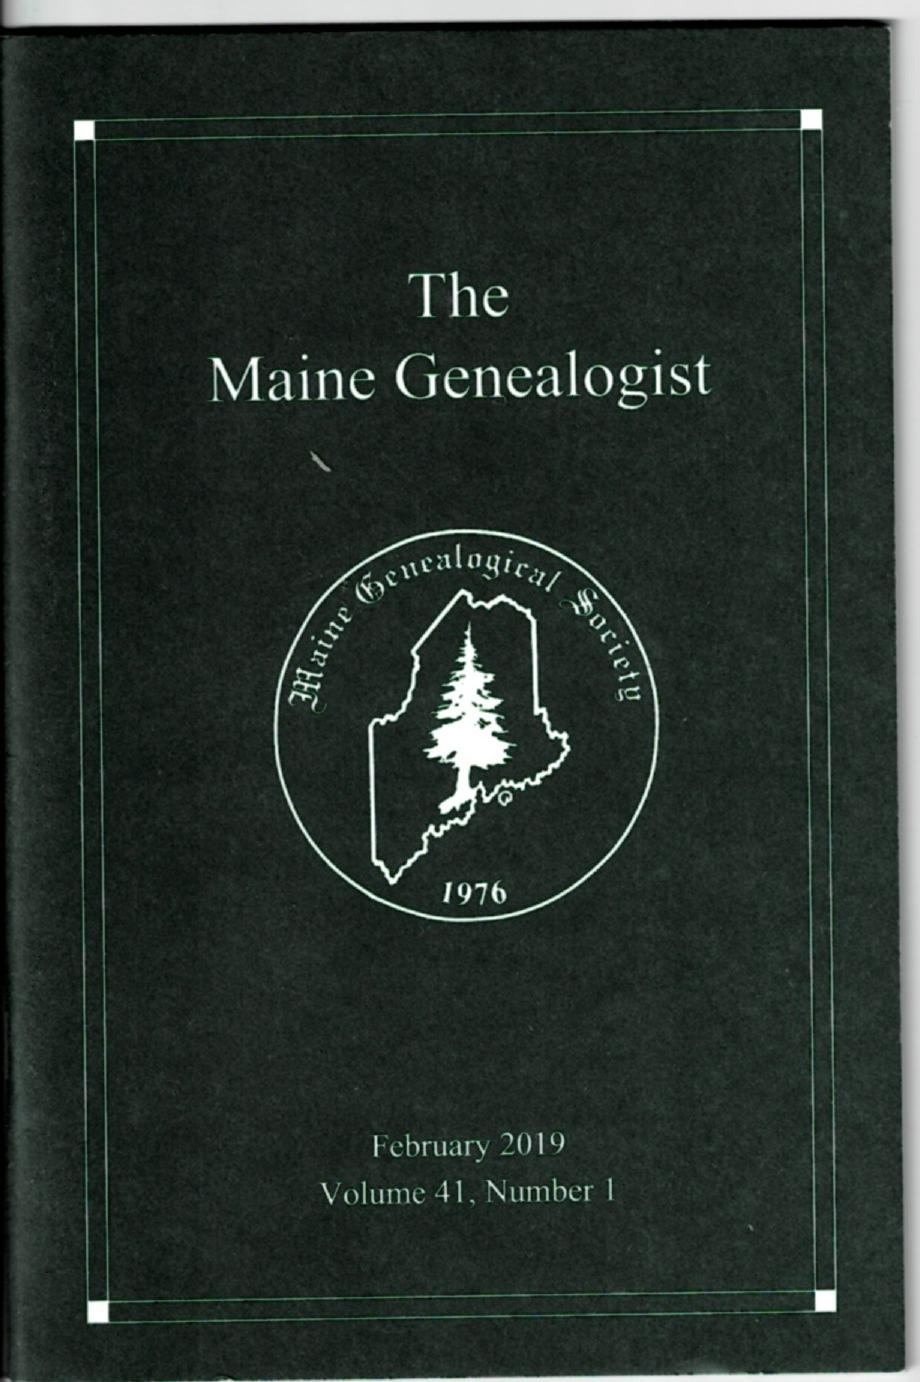 Image for The Maine Genealogist: Journal of the Maine Genealogical Society February 2019